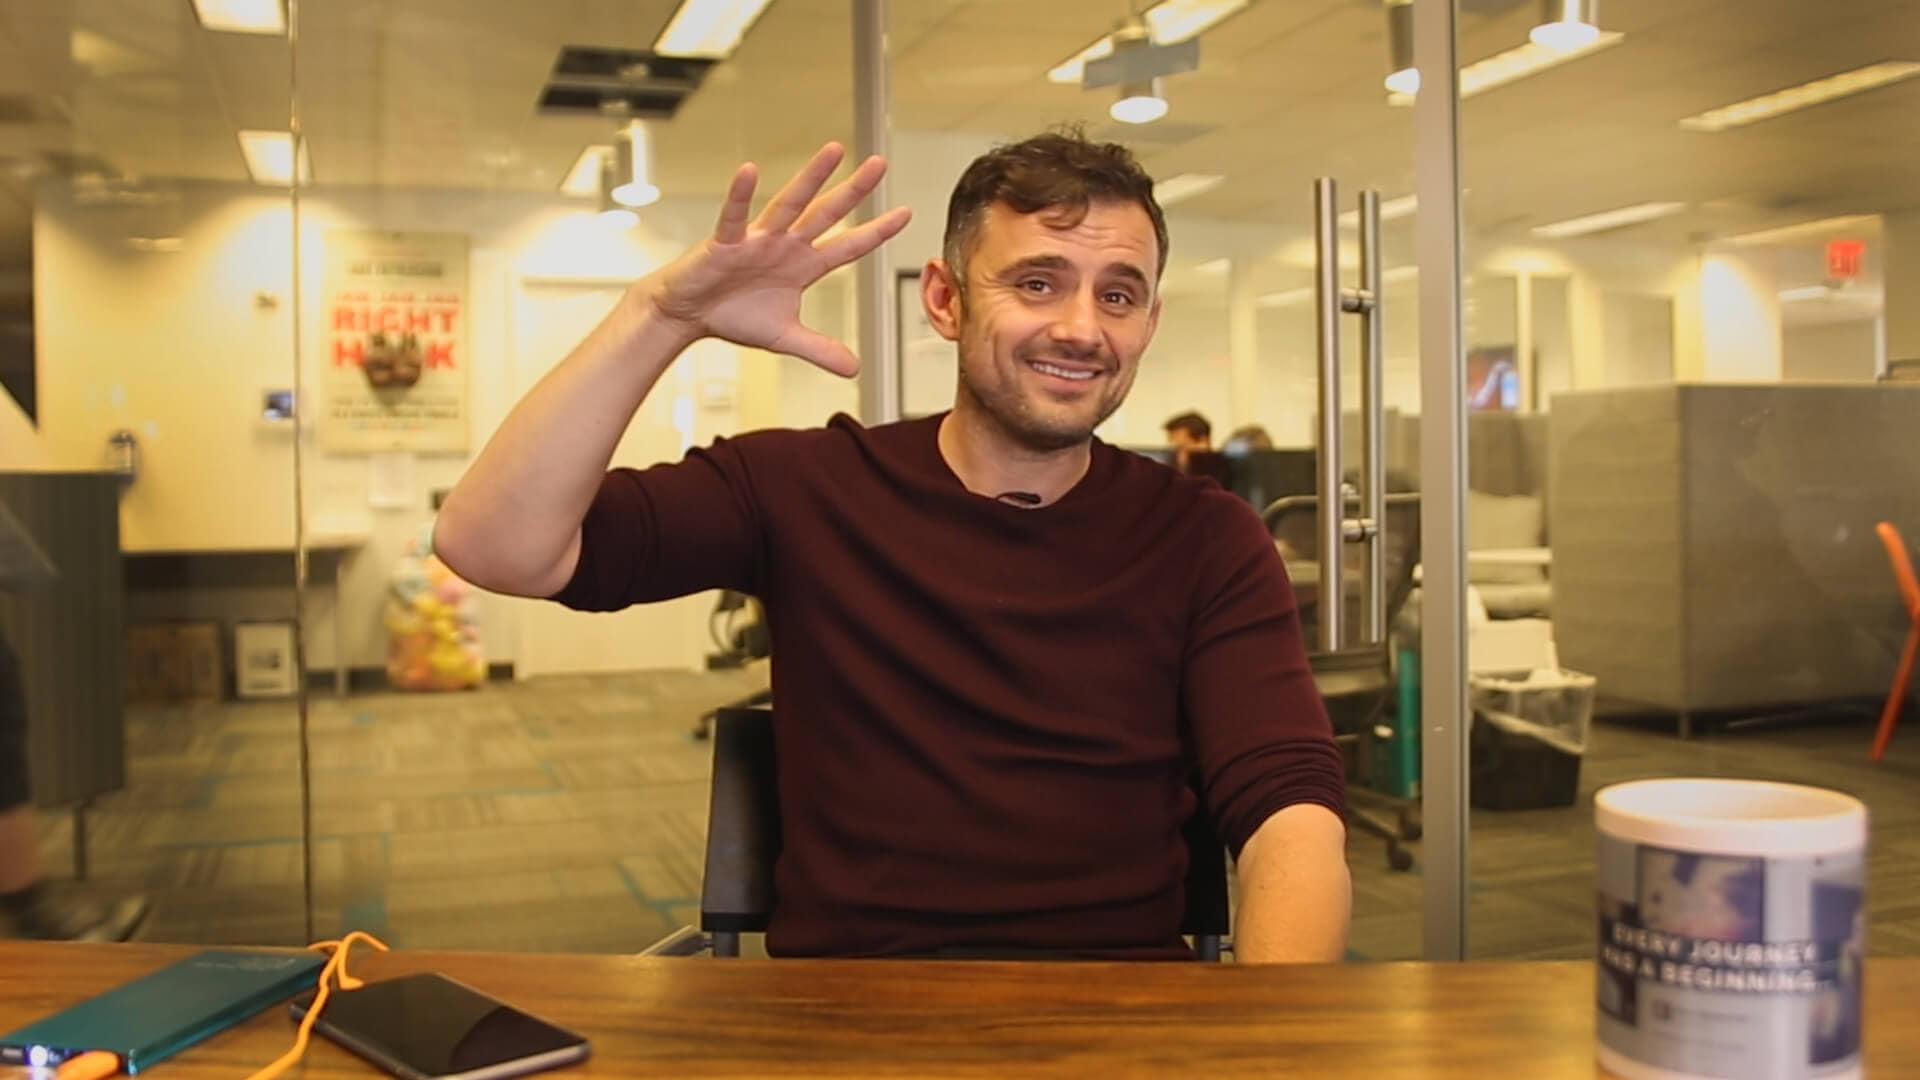 AskGaryVee Episode 150.5